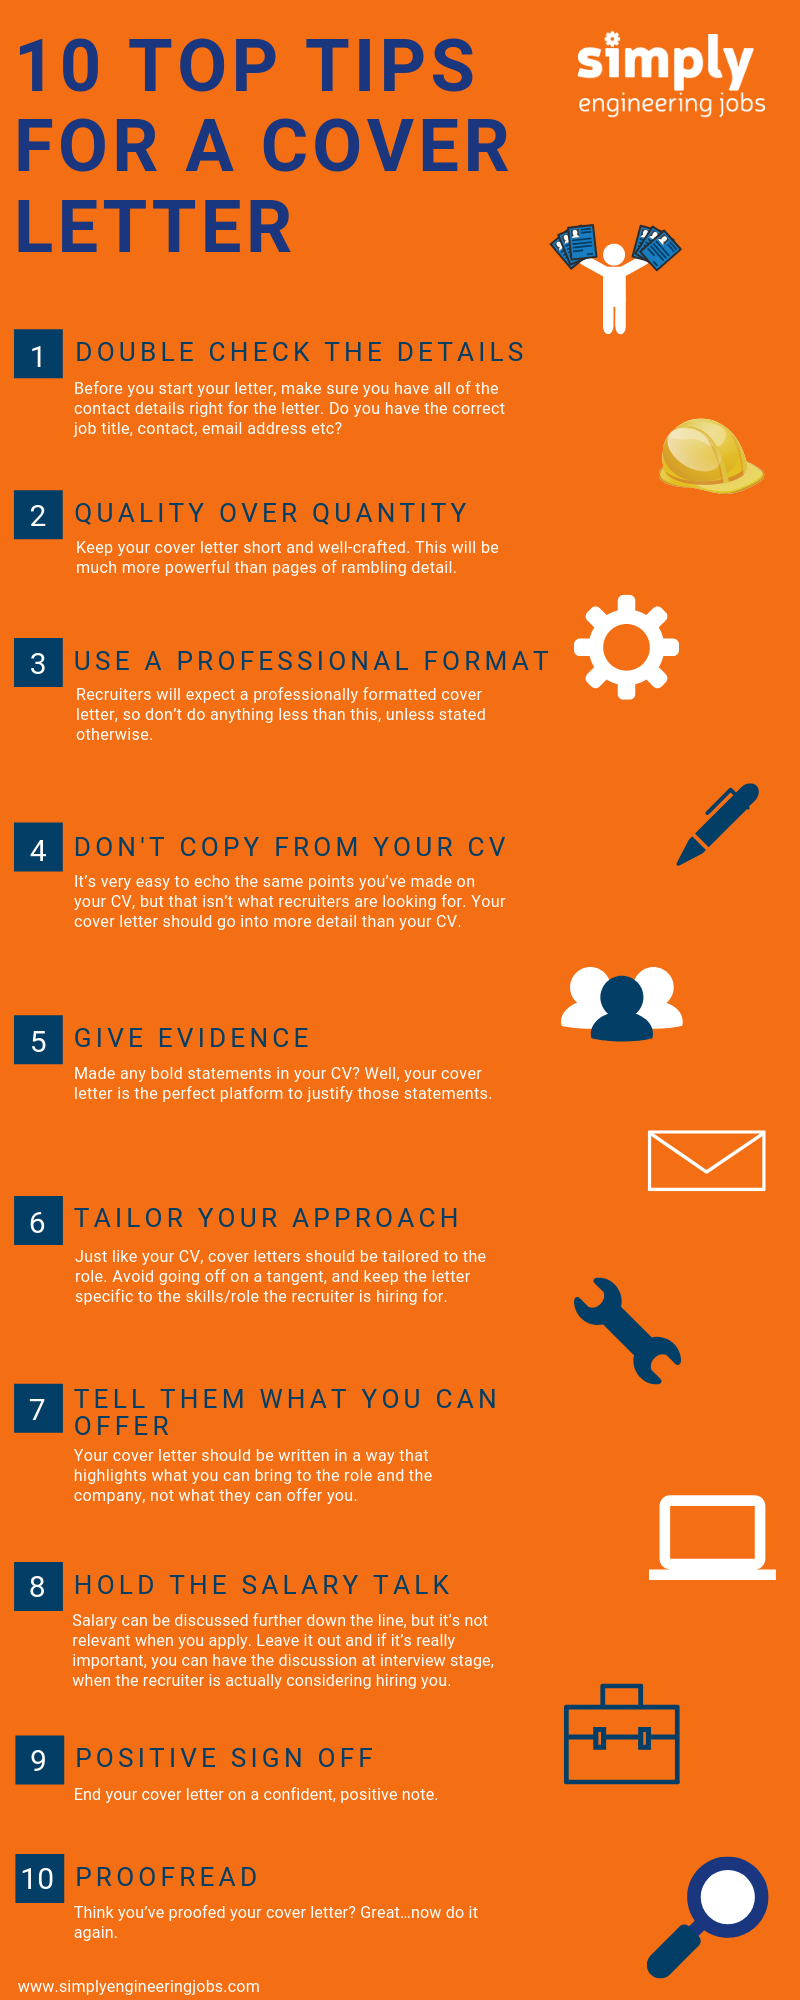 10 Top Tips For A Cover Letter 4